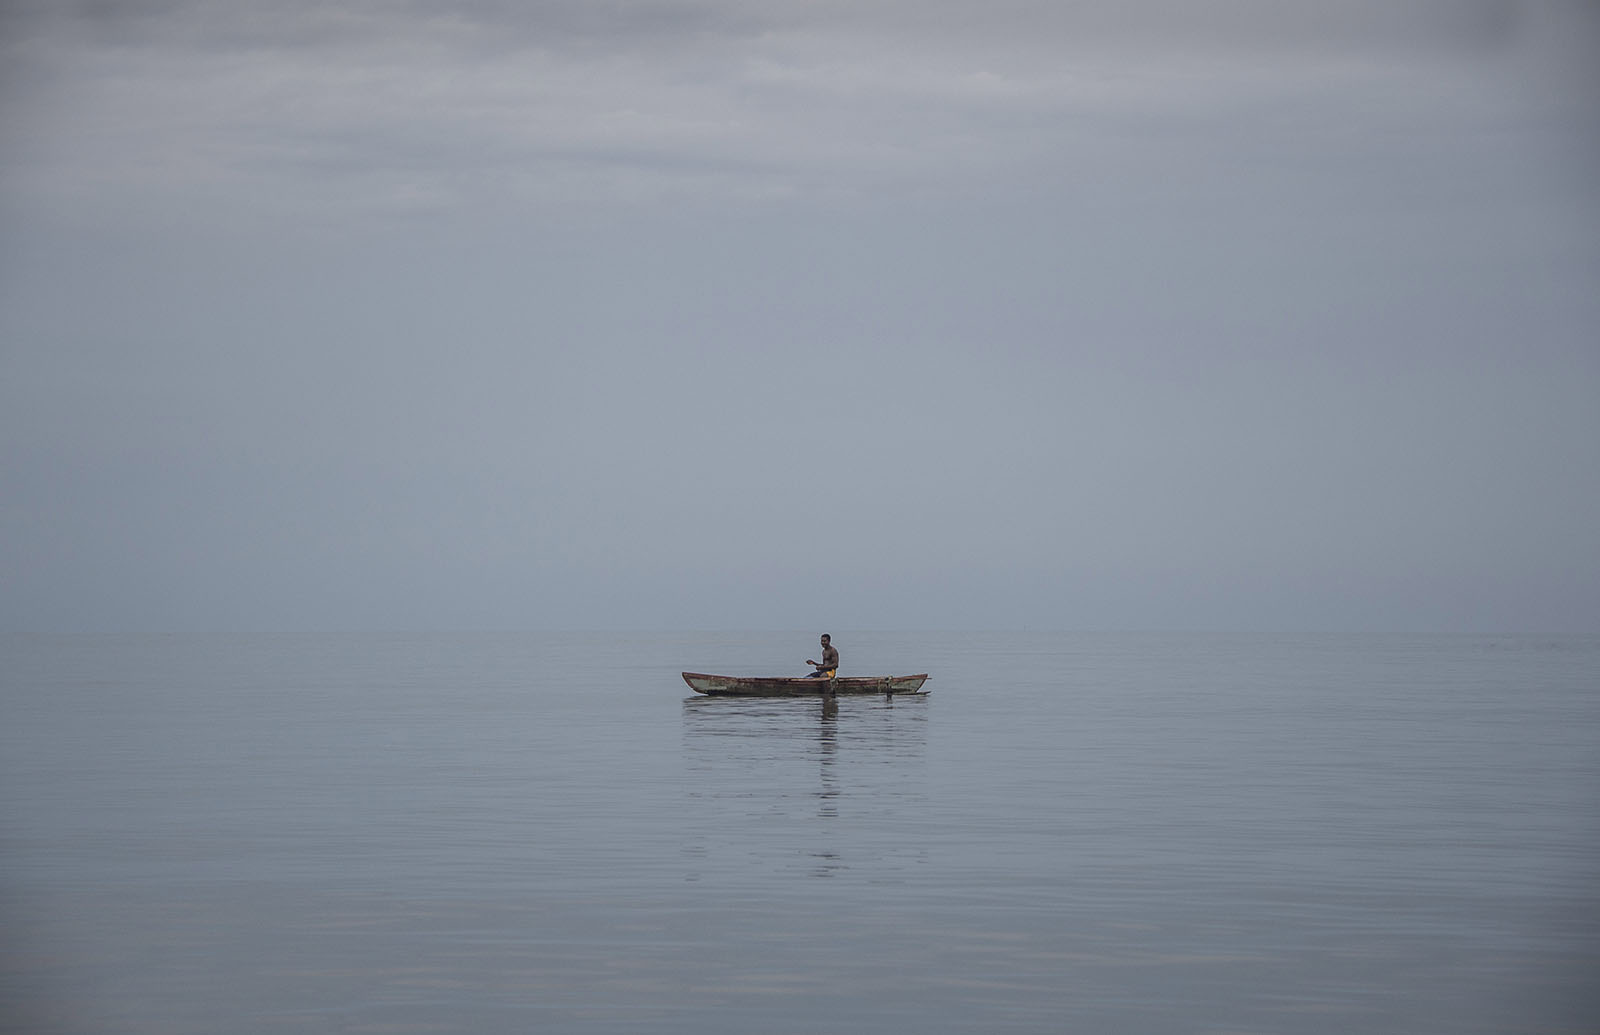 A Manus islander on his outrigger canoe in a sea of tranquility and calm just out from the Manus Island capitol Lorengau. © Brian Cassey